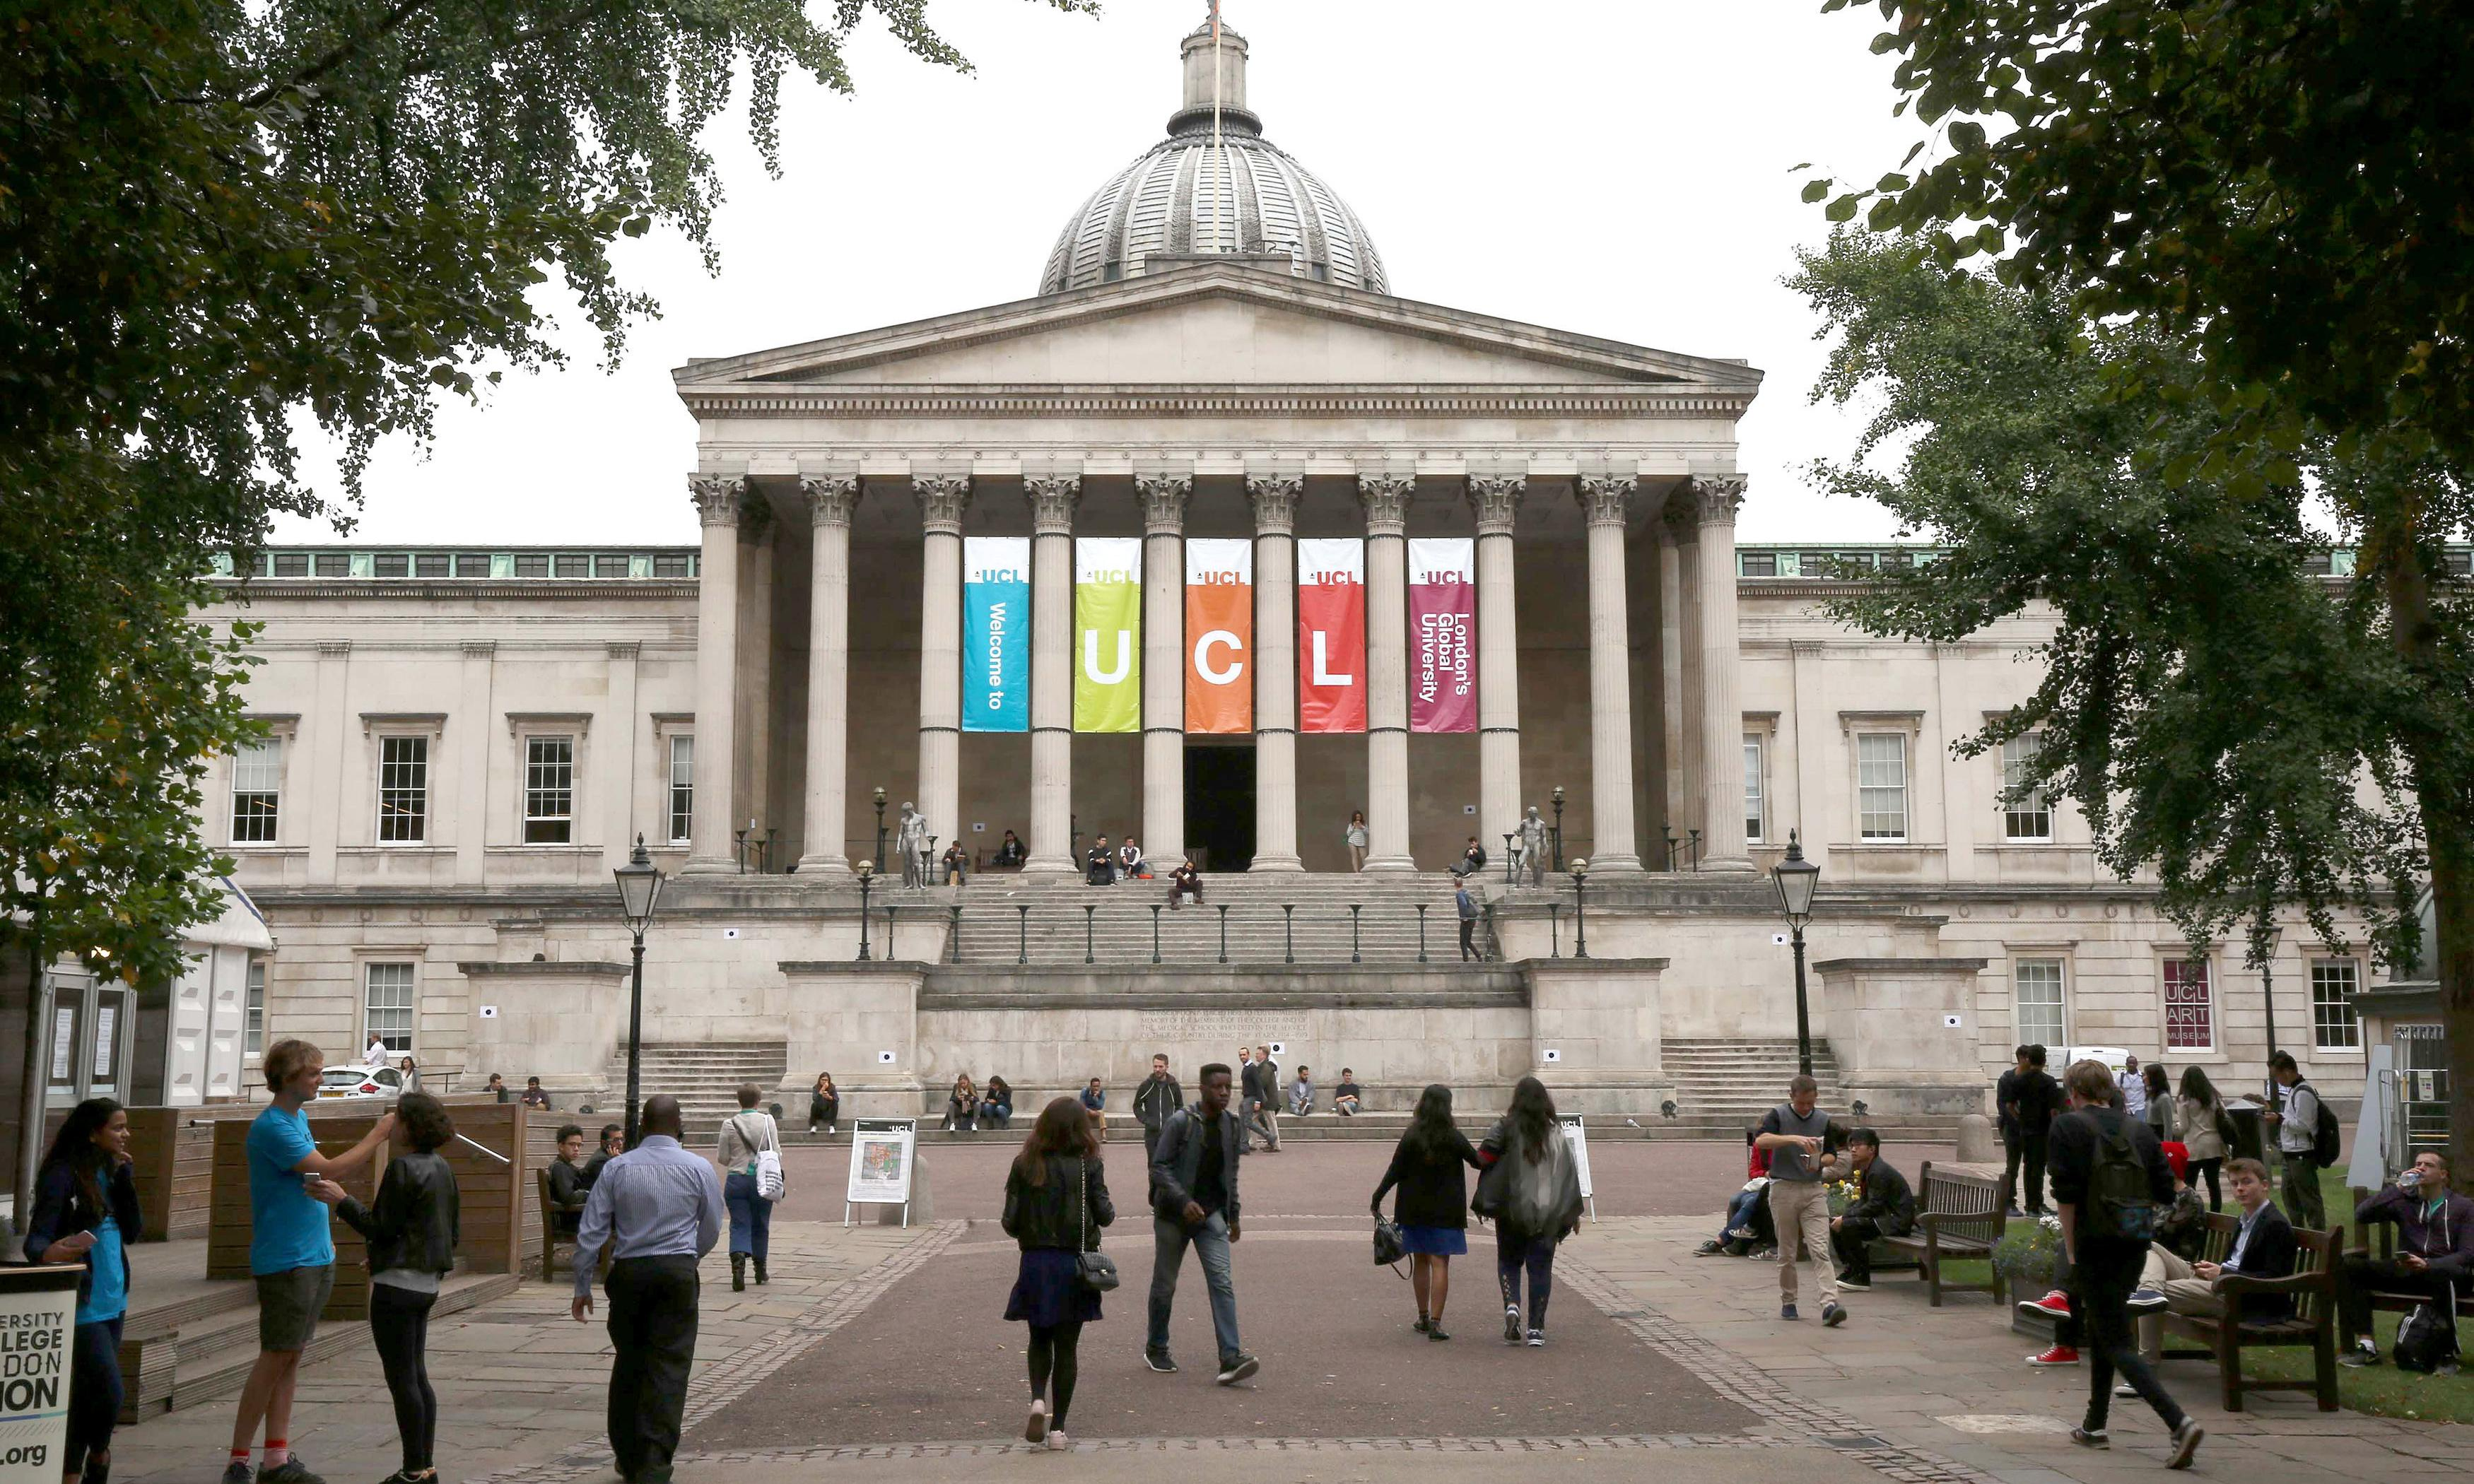 UCL to ban intimate relationships between staff and their students